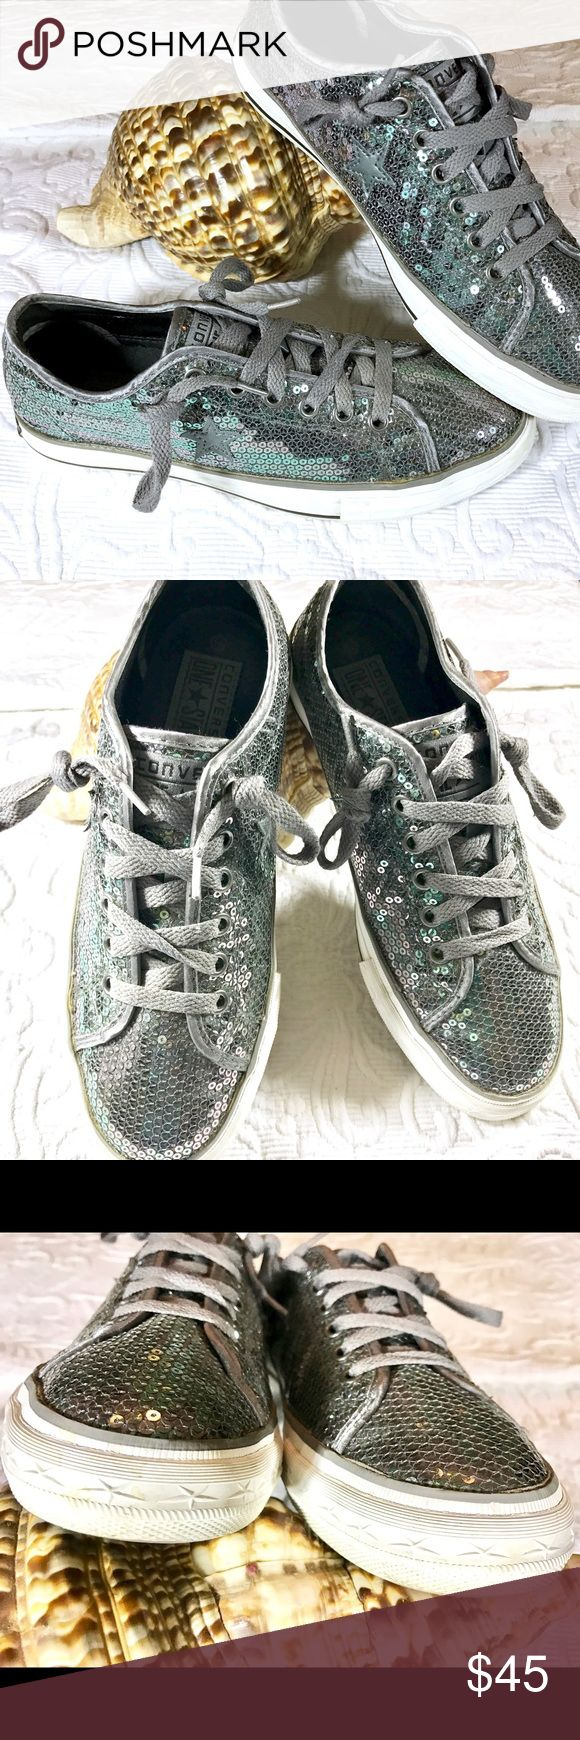 Mermaid Converse Sequin Sparklers Want some spring and summer sparkle? Trip the light fantastic with these gorgeous turquoise green and silvery sequin Converse. Great glam sneaks! Converse Shoes Sneakers